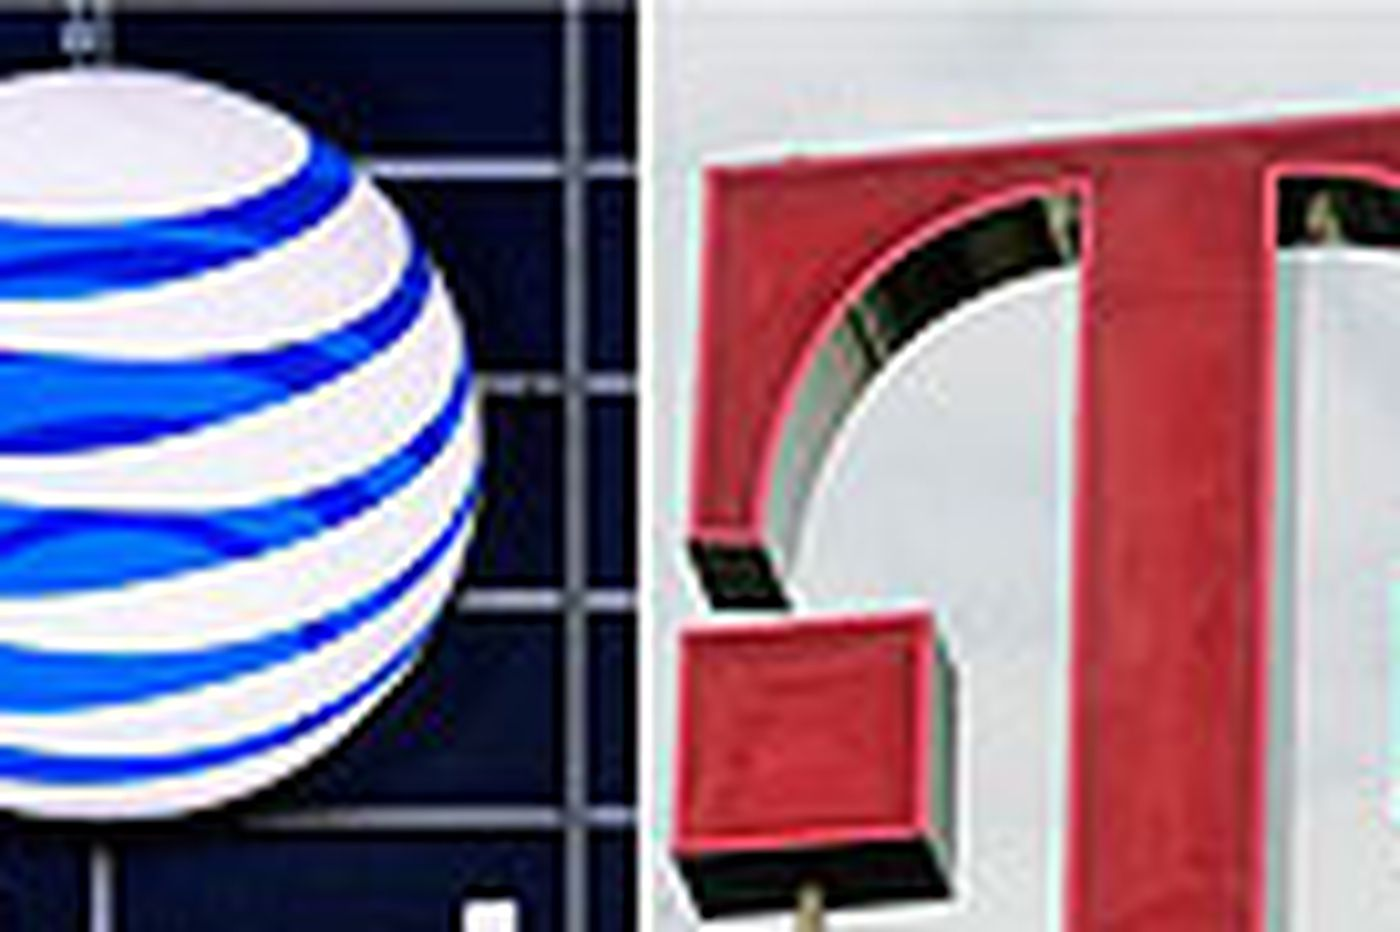 Jeff Gelles: FCC report highlights AT&T's real motive behind T-Mobile merger